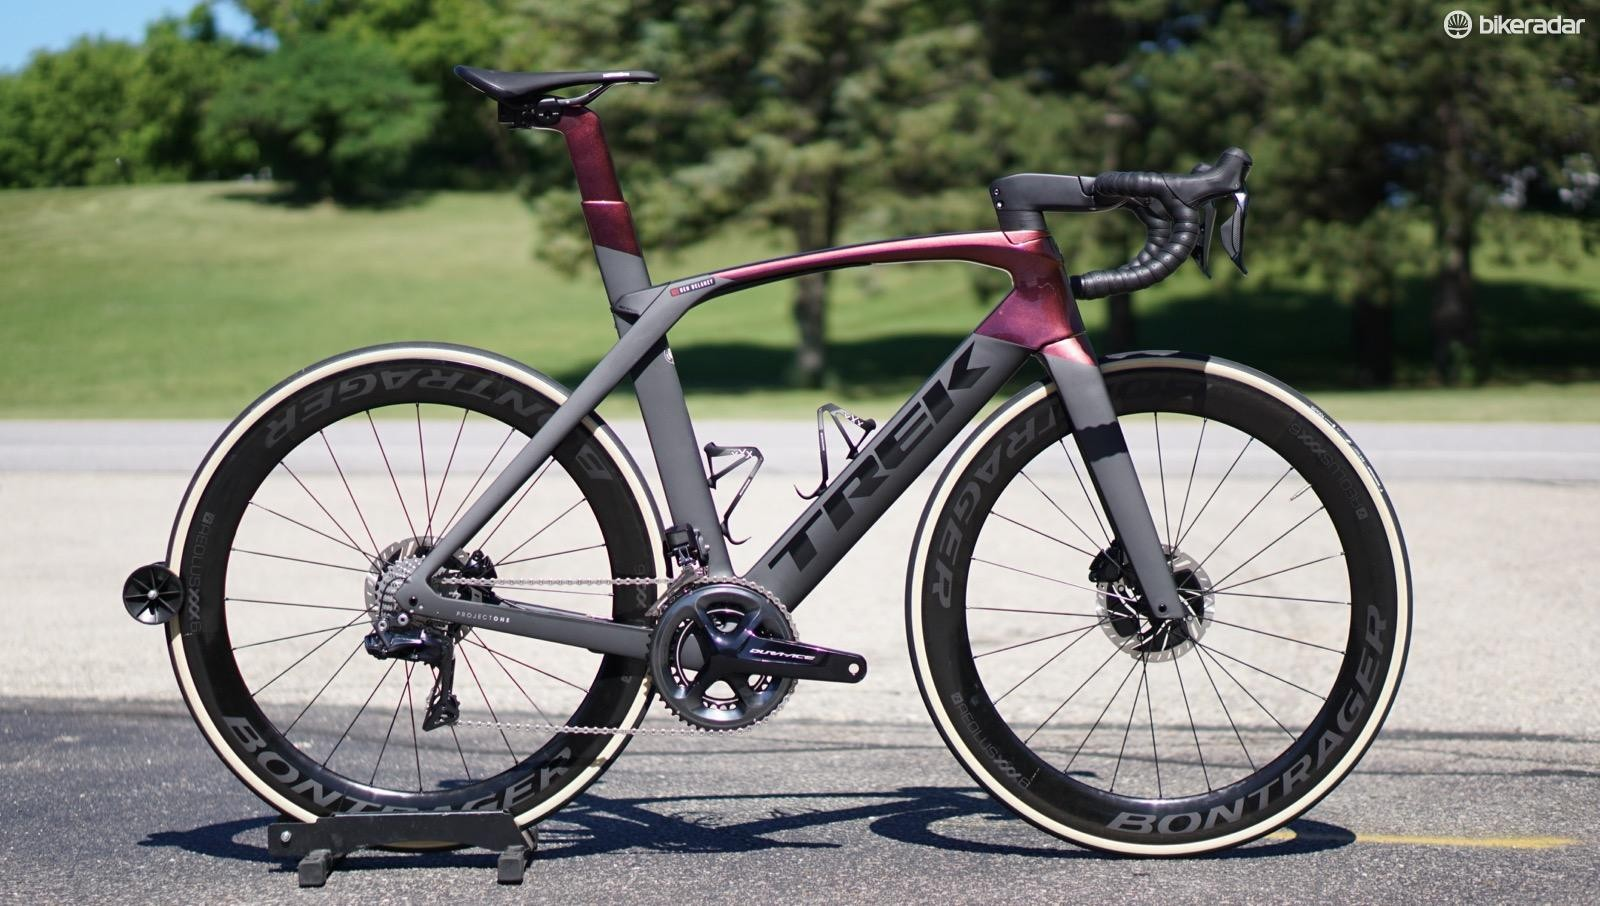 The Trek Madone SLR 9 Disc comes in special ICON paint options as well, but this standard Project One finish itself is stunning, changing with the angle of the light